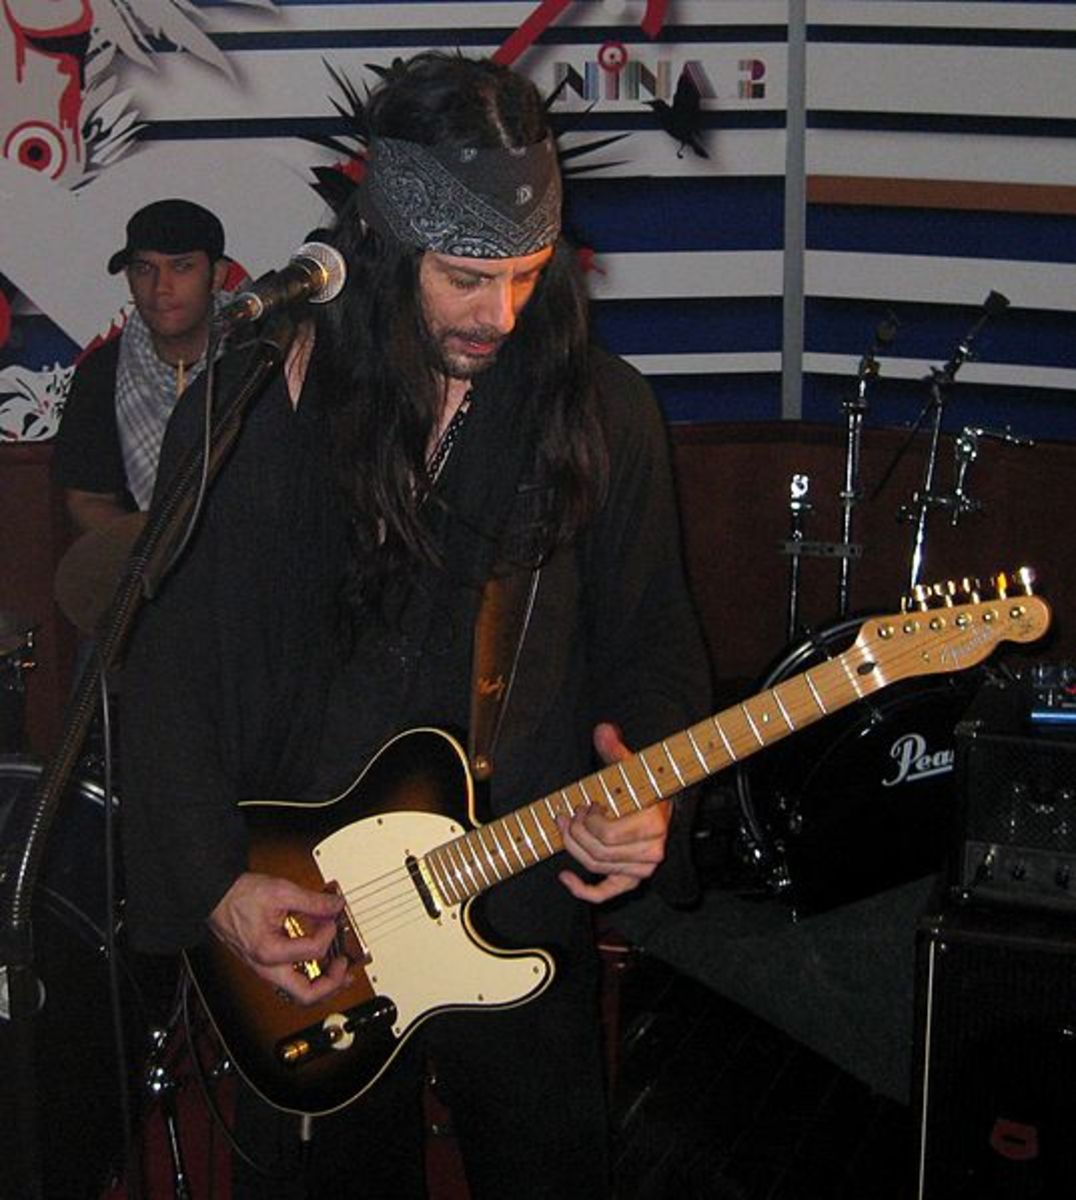 Richie Kotzen and the Fender Telecaster